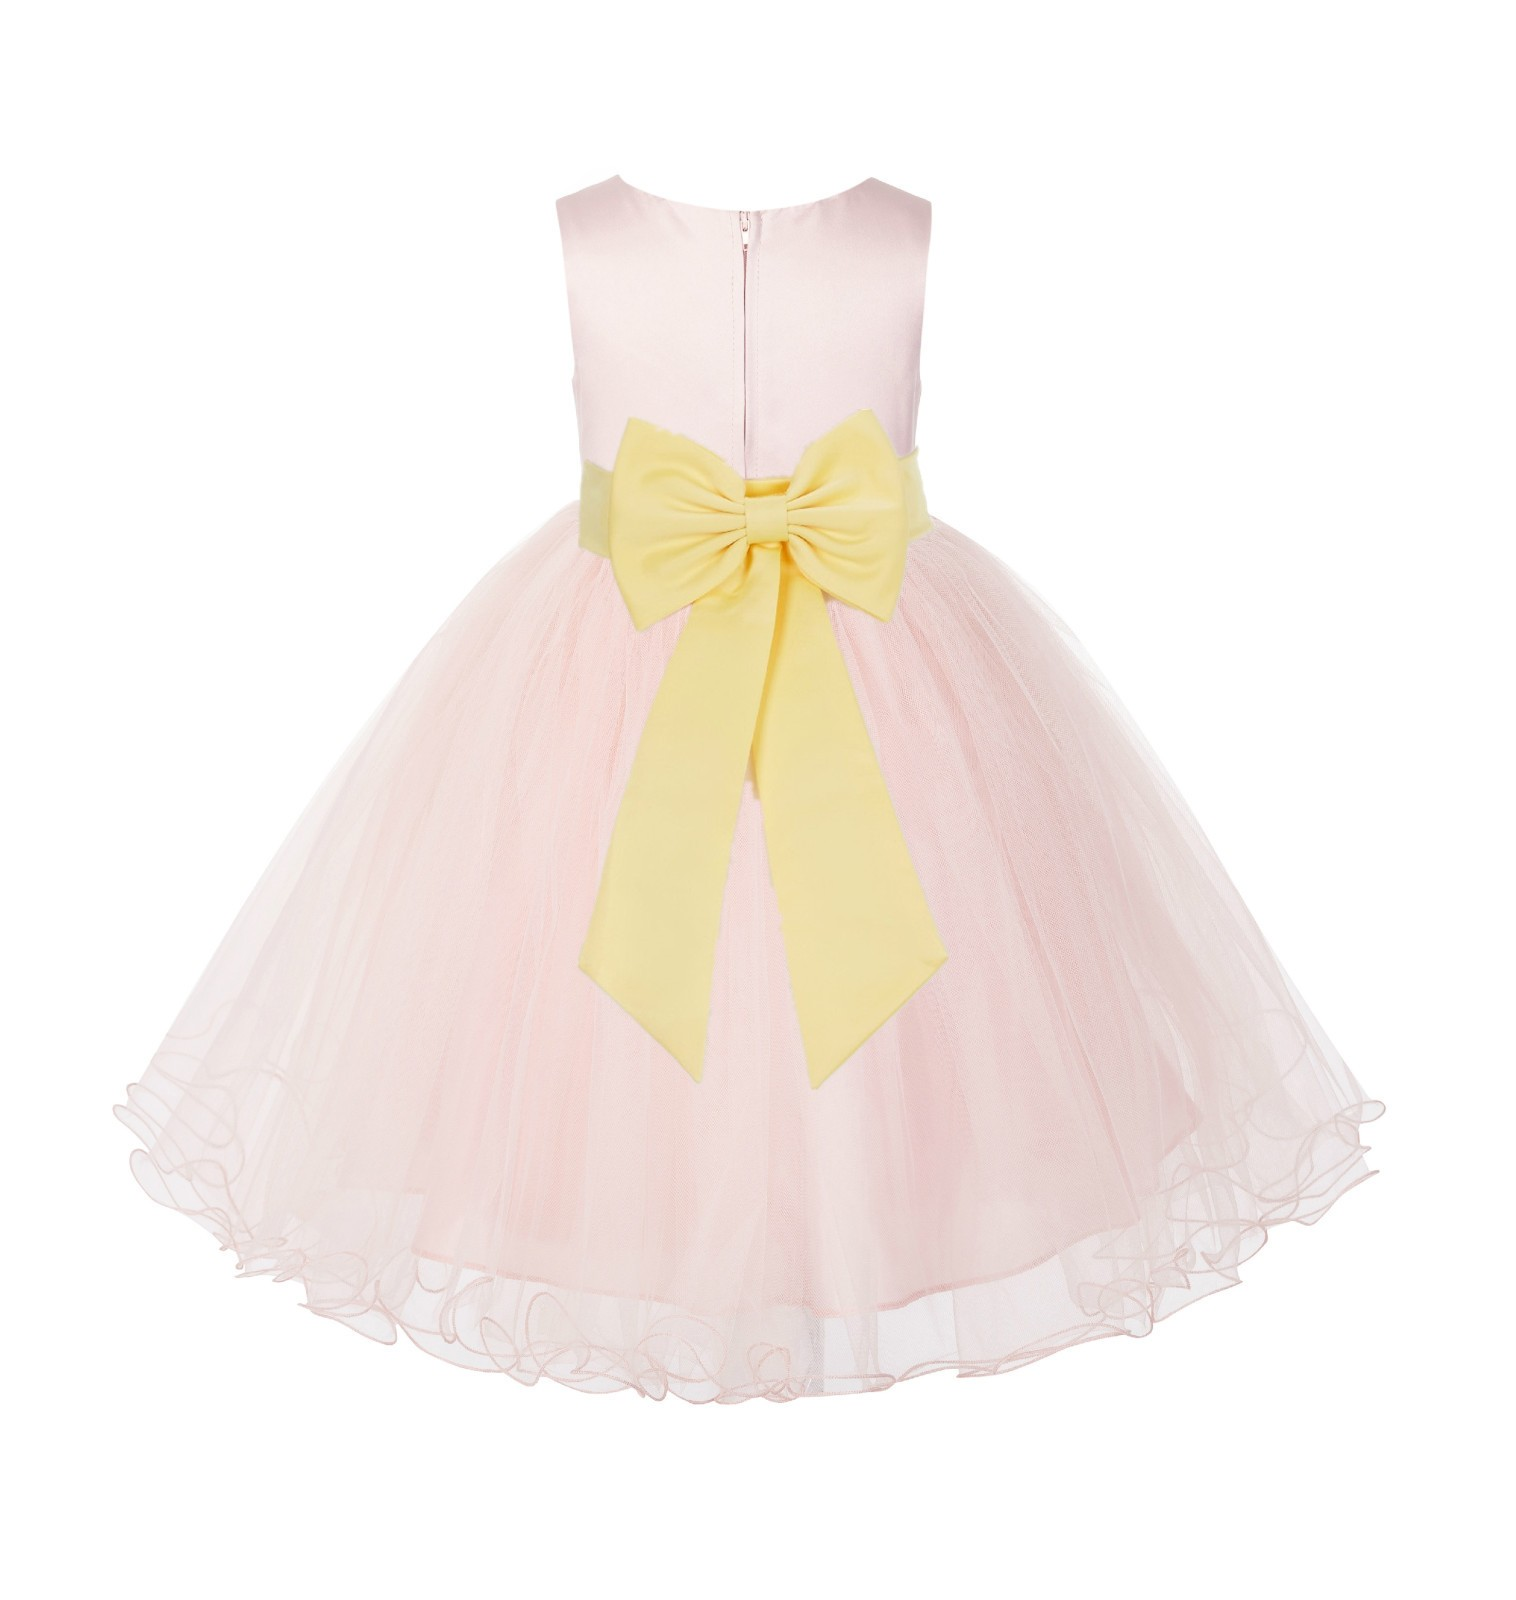 Blush PInk / Canary Tulle Rattail Edge Flower Girl Dress Wedding Bridesmaid 829T